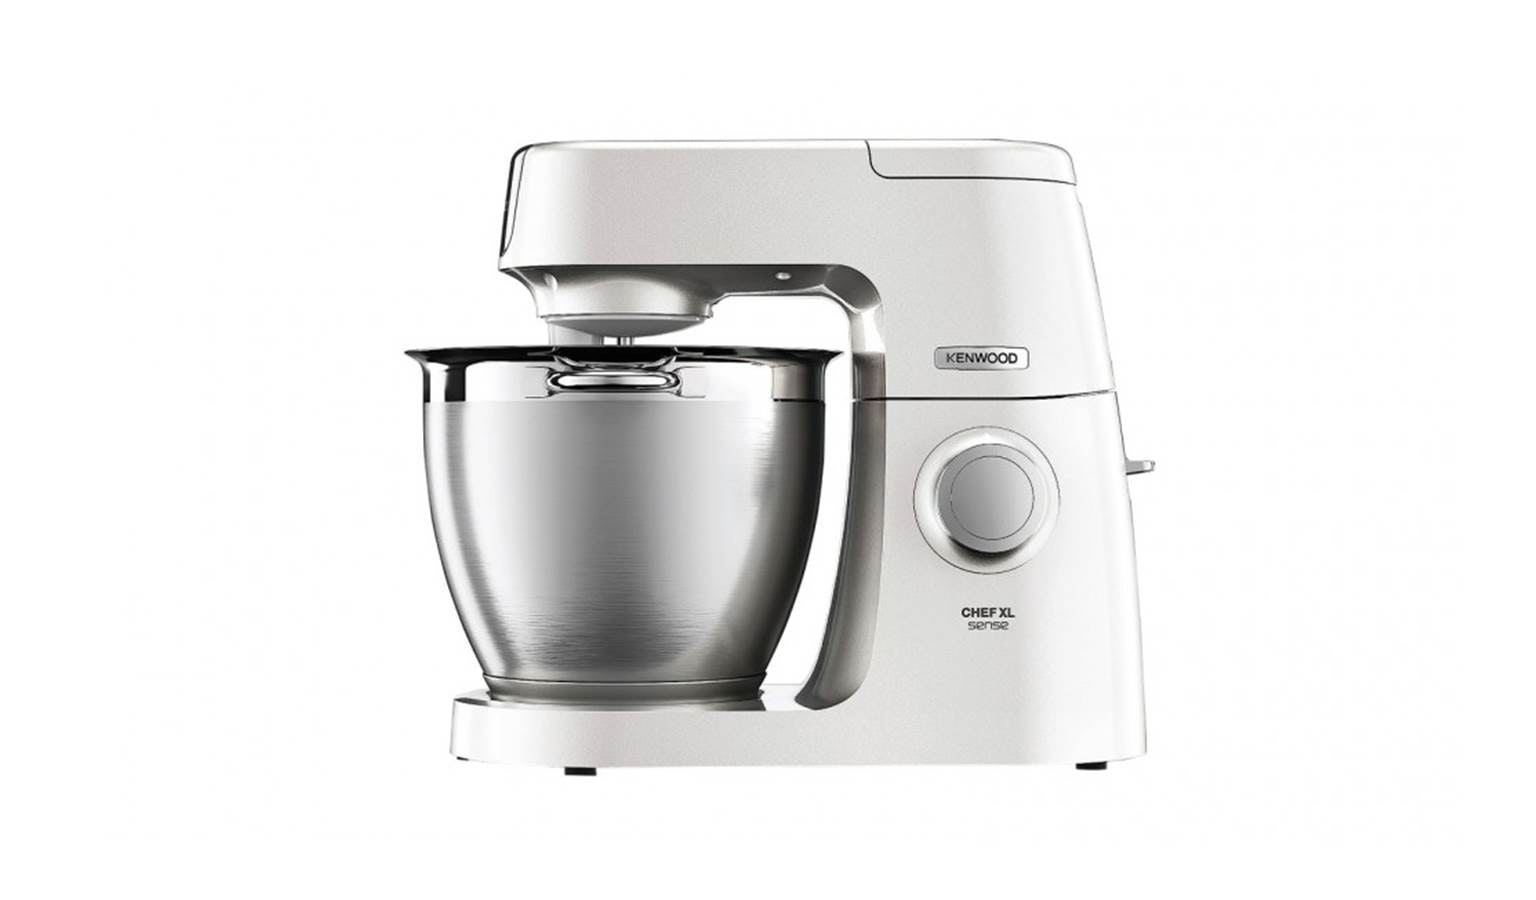 Kenwood KQL6300 Chef XL Sense Kitchen Machine - Ivory